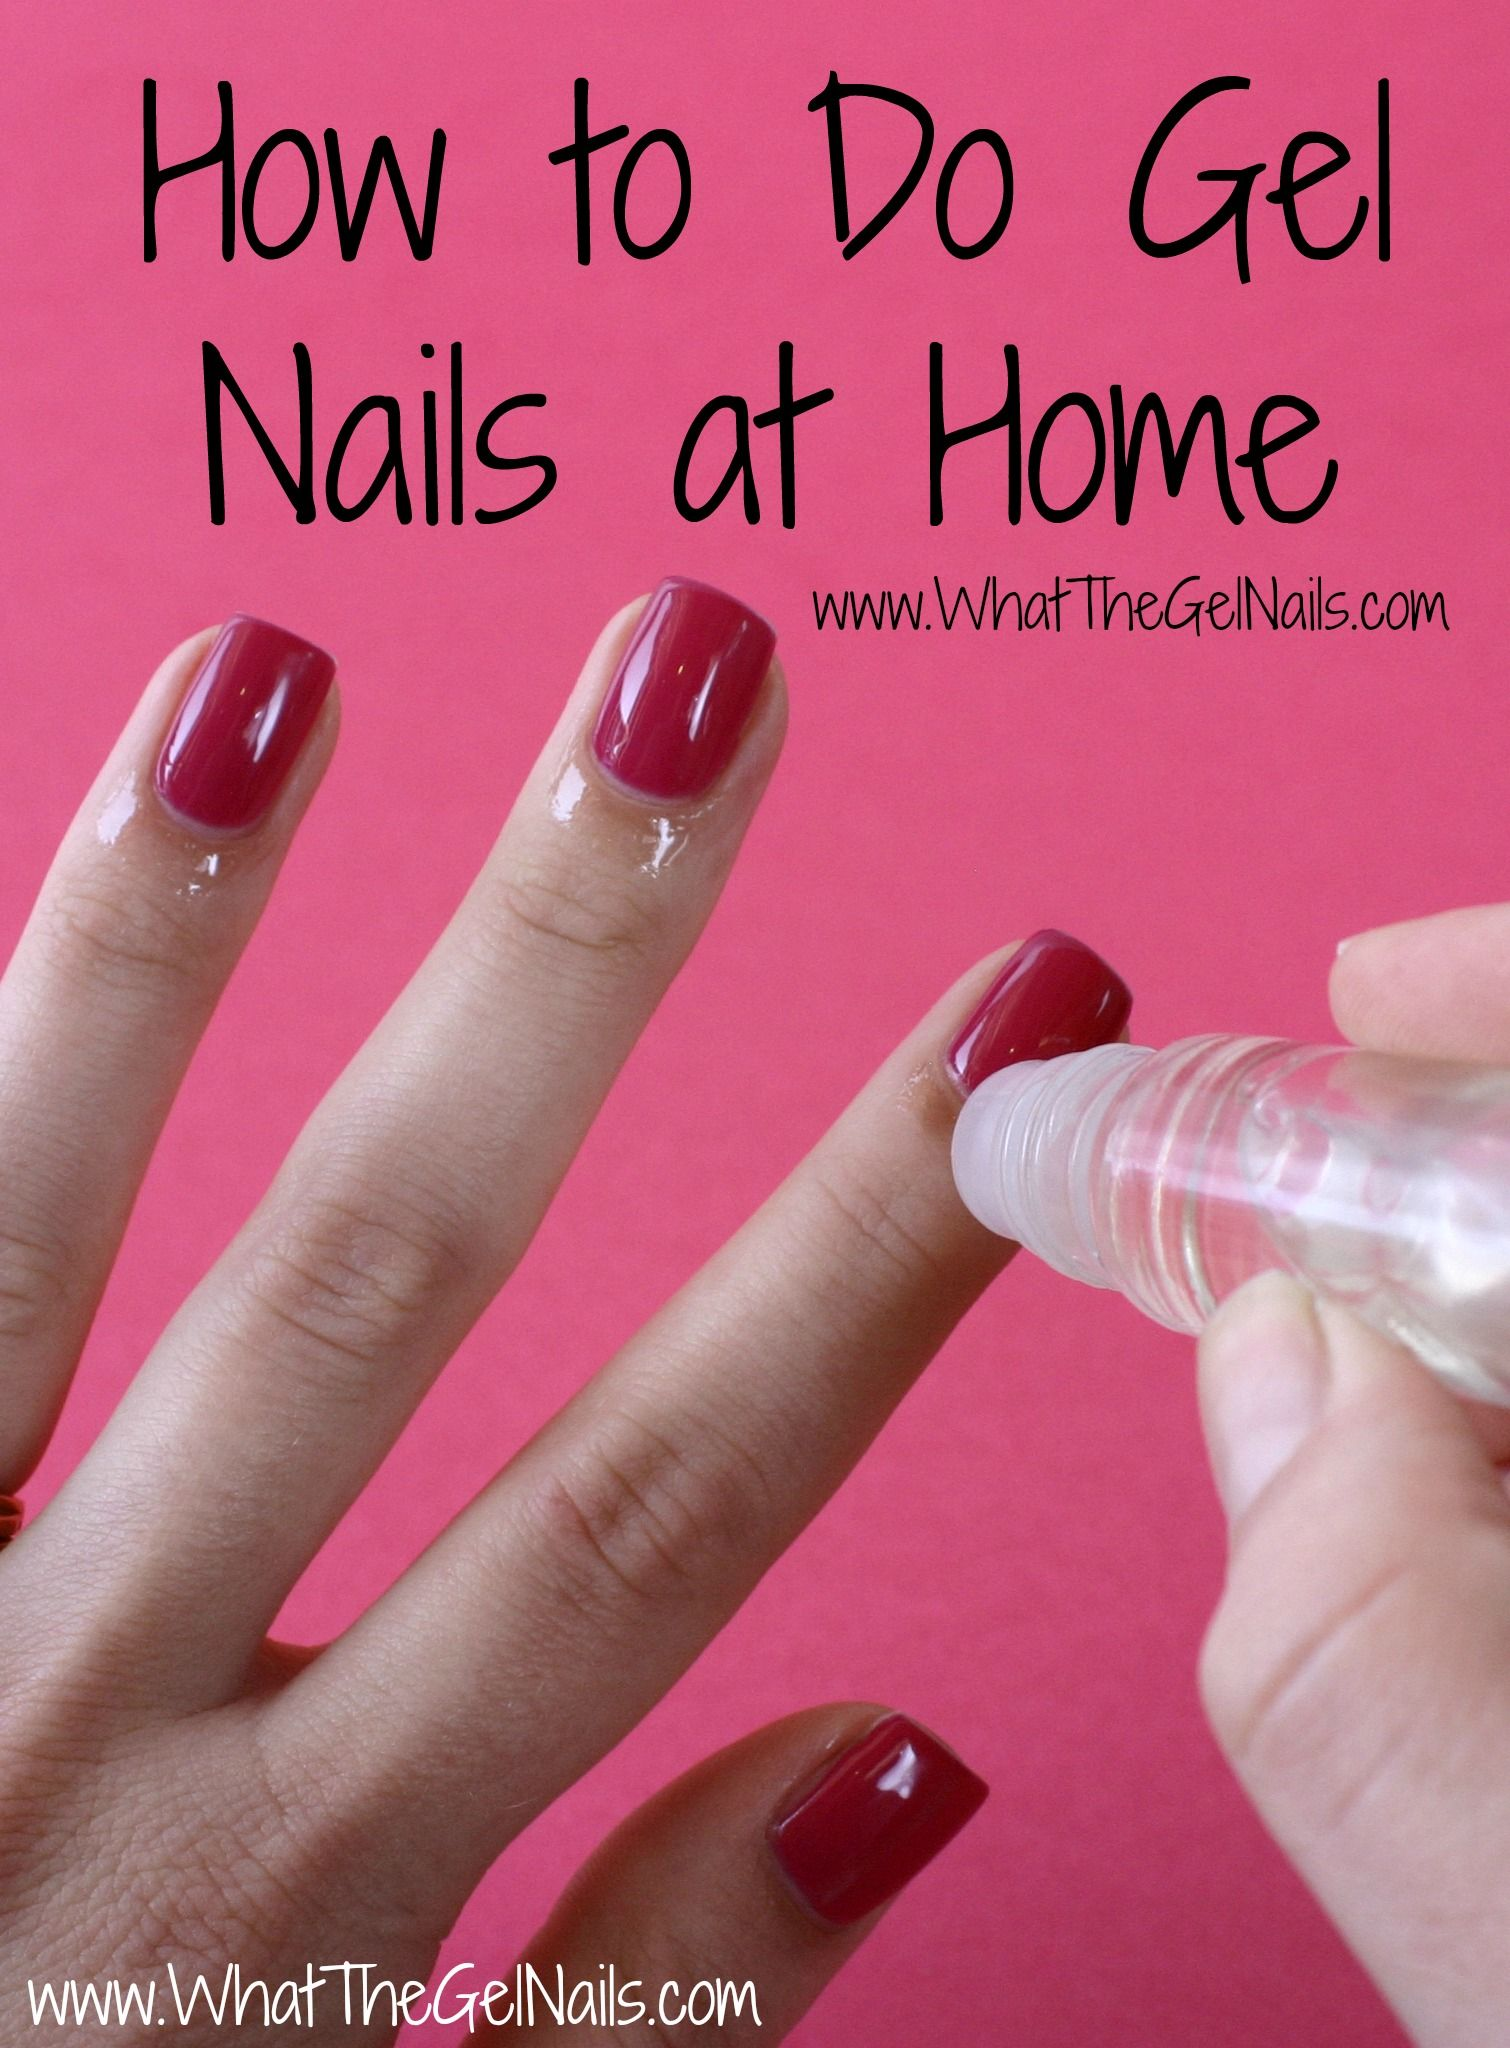 best 25 gel nails at home ideas on pinterest diy gel nails at home gel nails and home gel